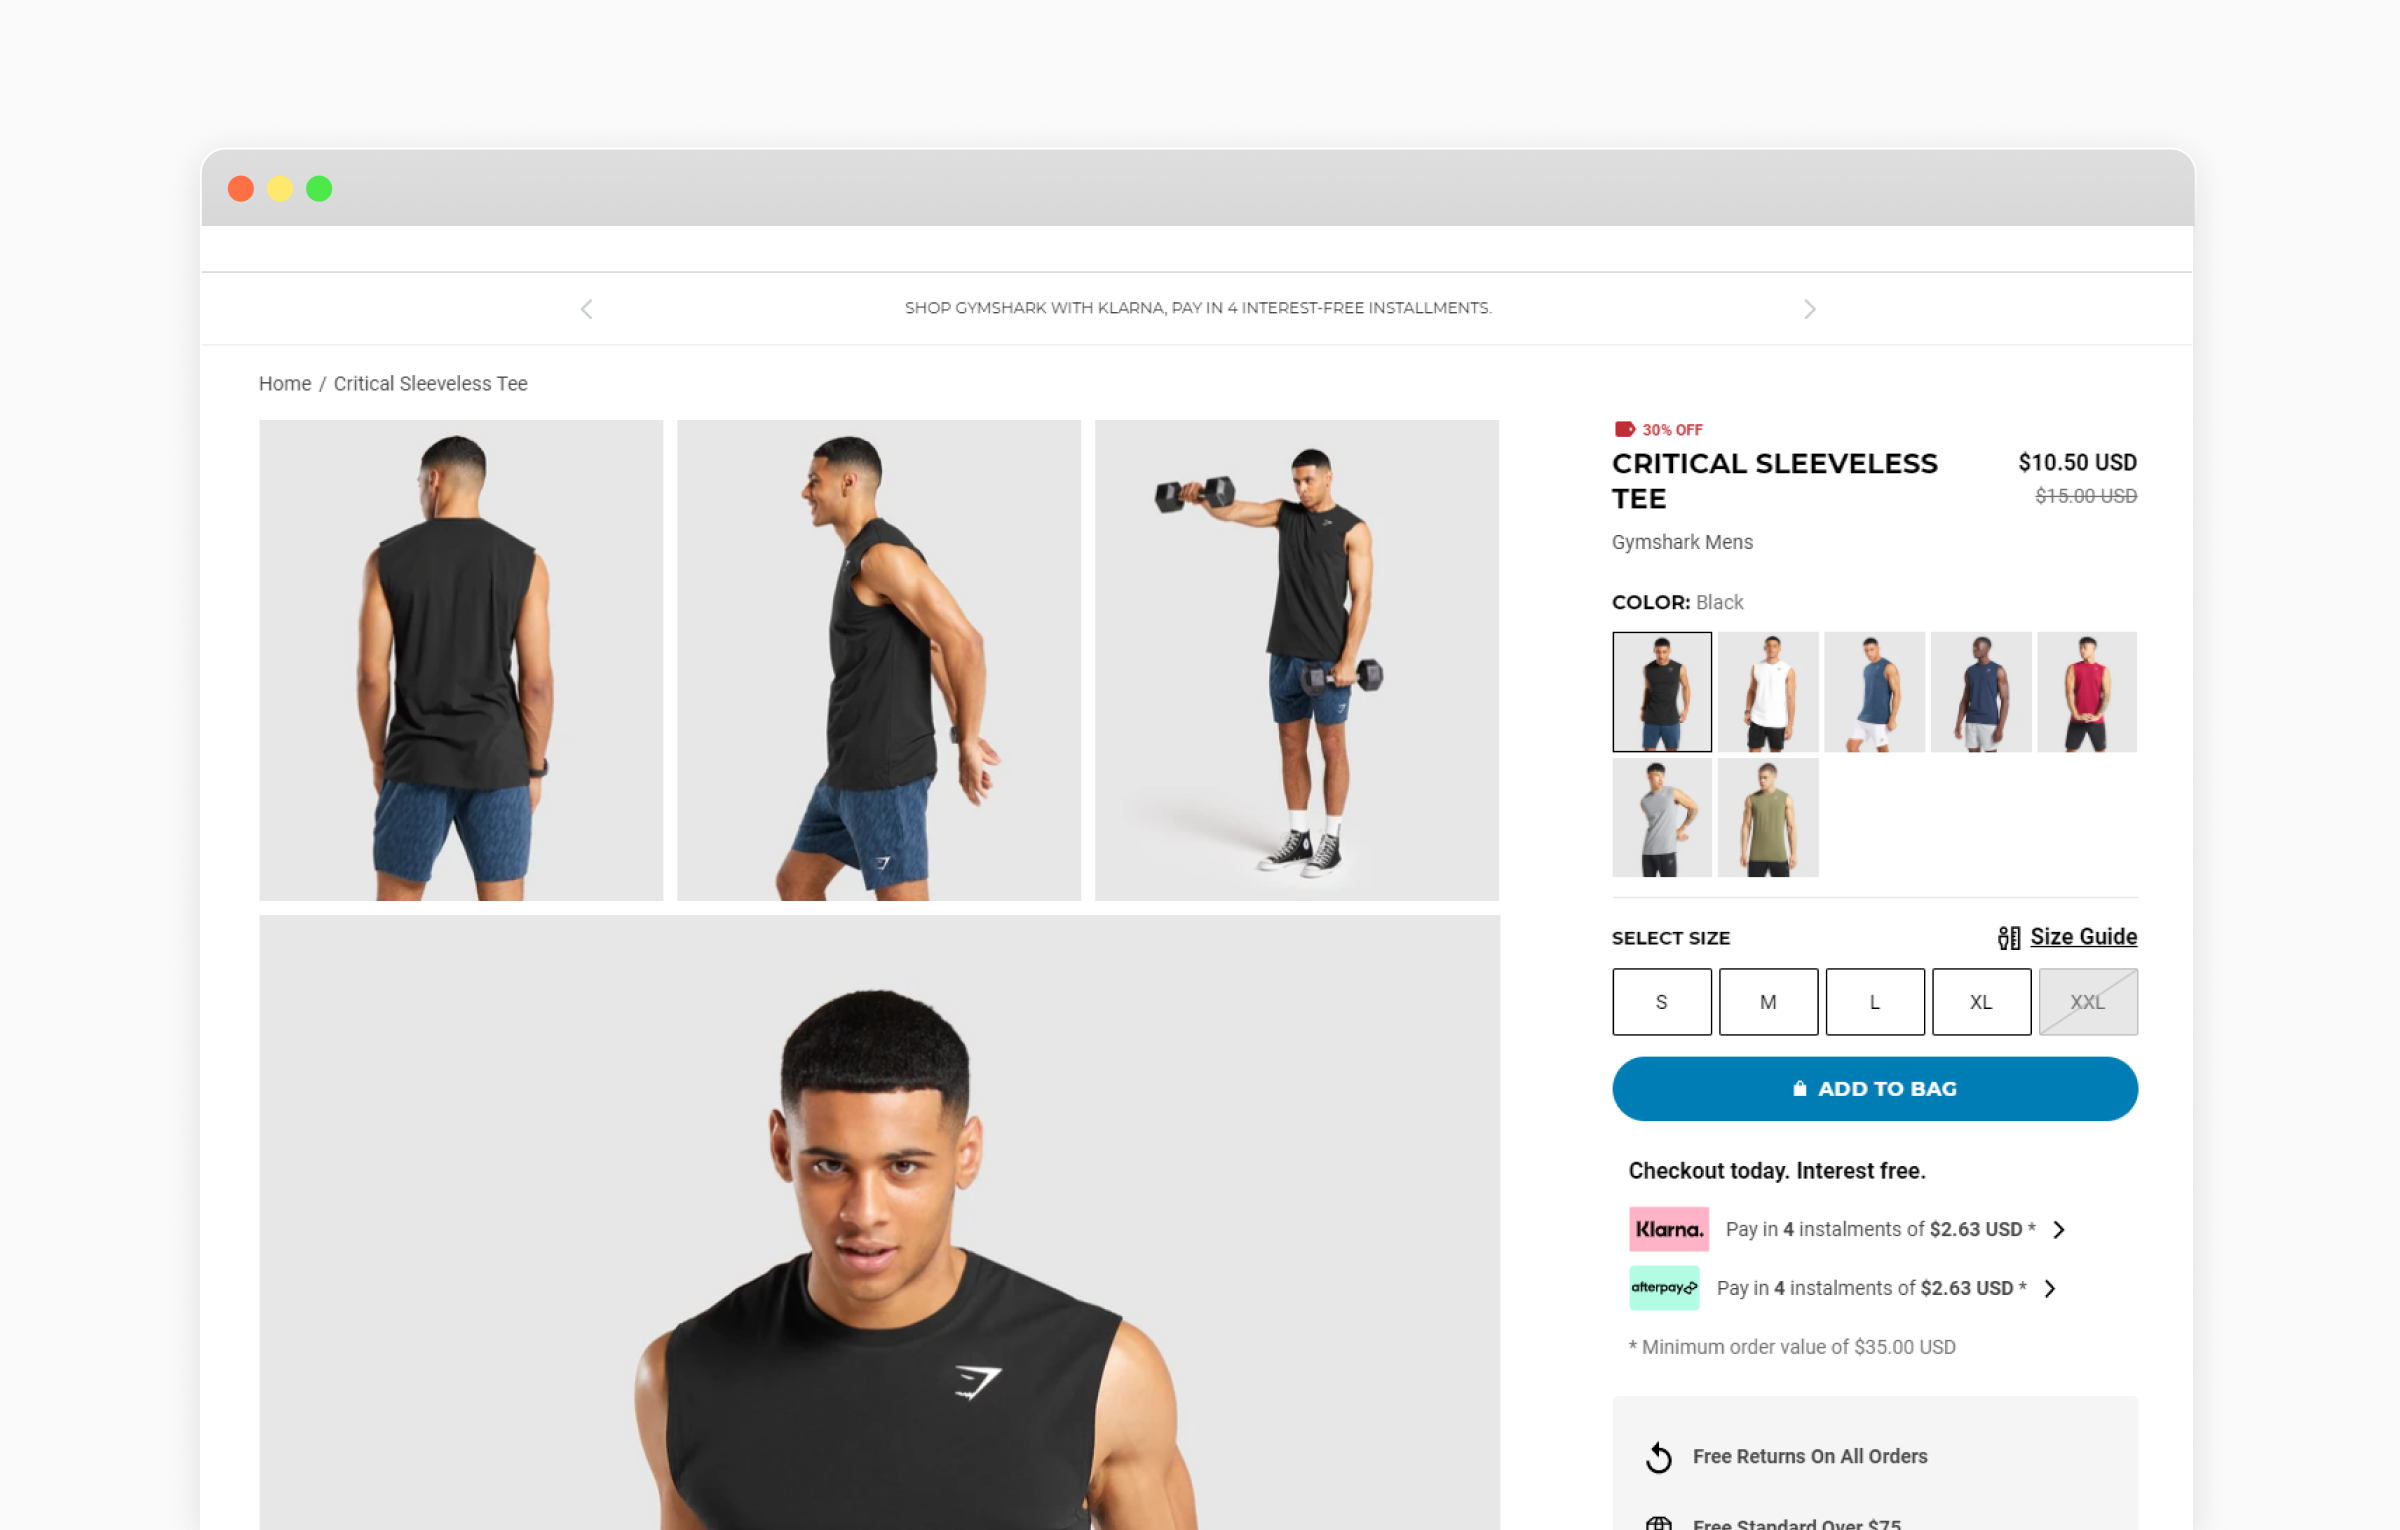 product page design